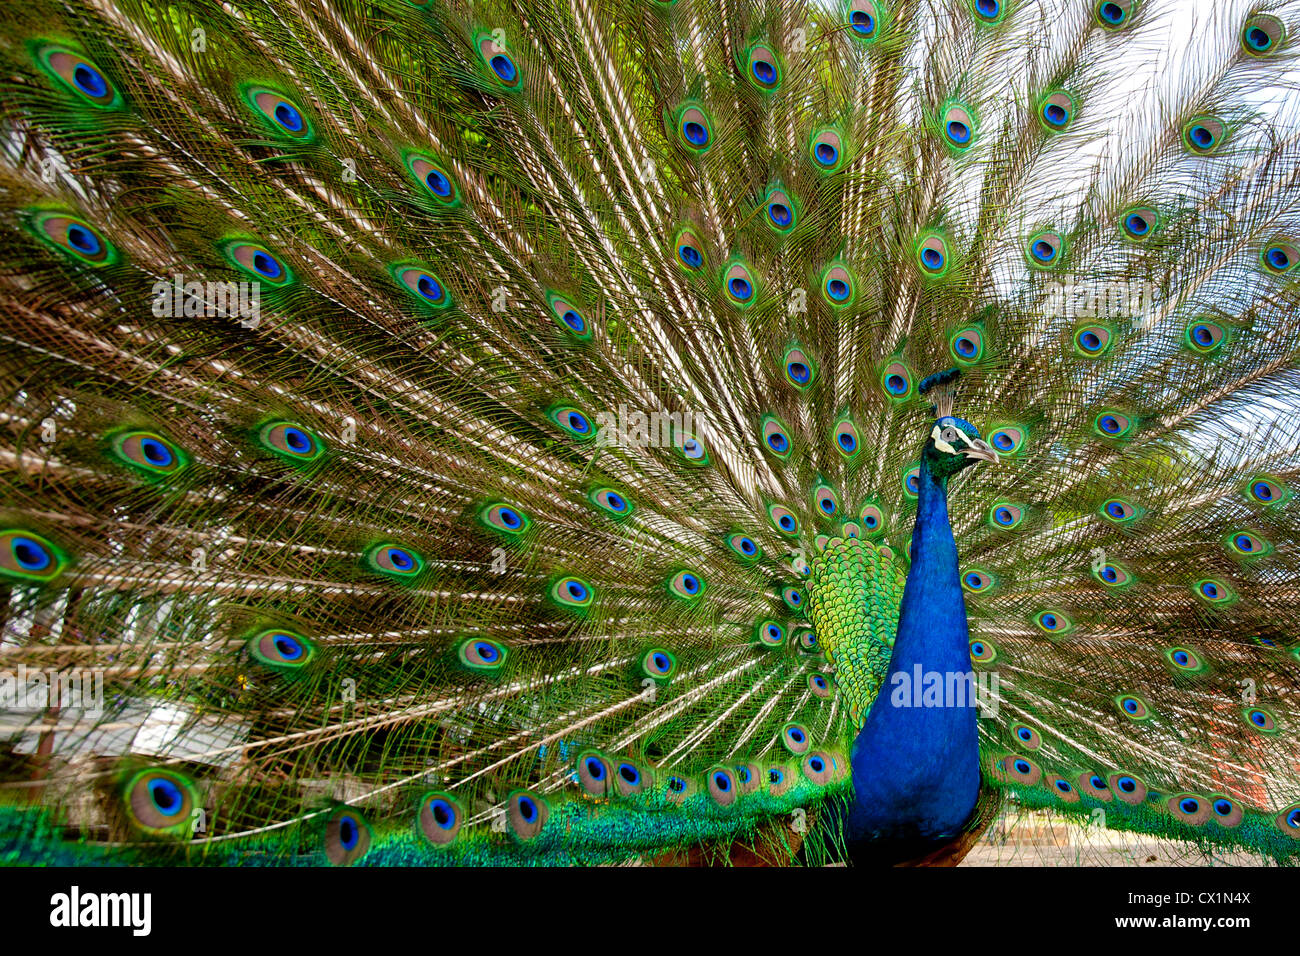 Peacock, Mill Works, Mill House, Yafford Mill, Calbourne, Isle of Wight, England, UK, - Stock Image